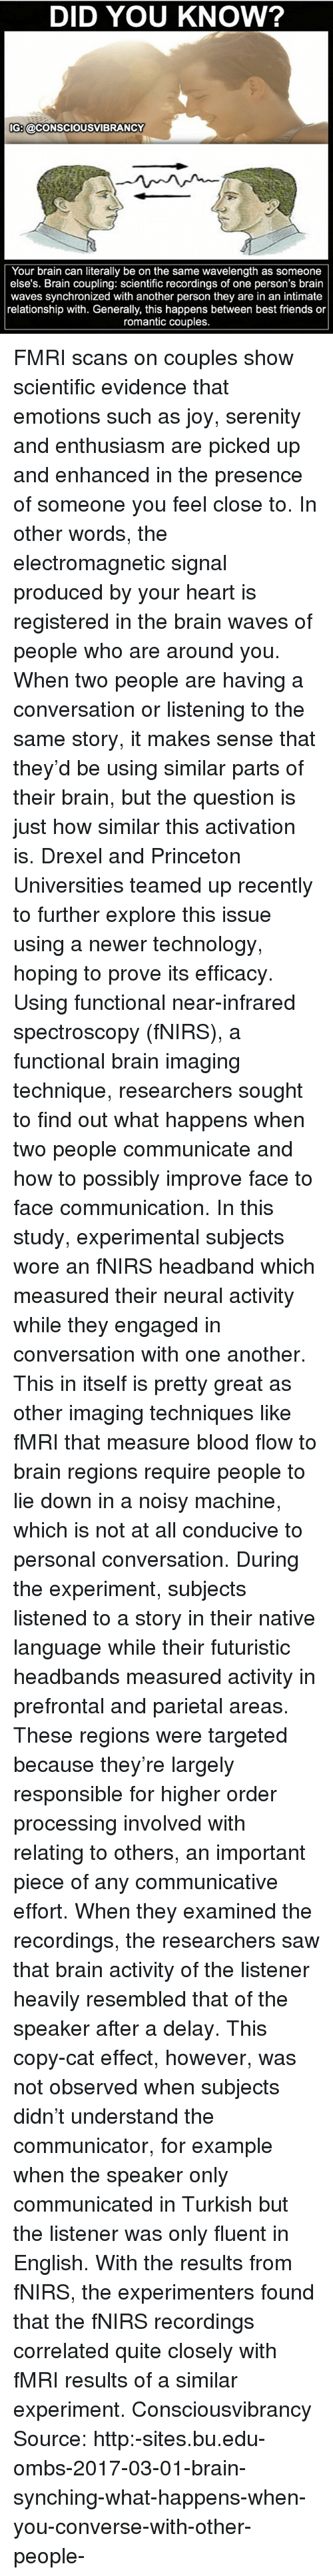 Friends, Memes, and Saw: DID YOU KNOW?  IG:@CONSCIOUSVIBRANCY  Your brain can literally be on the same wavelength as someone  else's. Brain coupling: scientific recordings of one person's brain  waves synchronized with another person they are in an intimate  relationship with. Generally, this happens between best friends or  romantic couples. FMRI scans on couples show scientific evidence that emotions such as joy, serenity and enthusiasm are picked up and enhanced in the presence of someone you feel close to. In other words, the electromagnetic signal produced by your heart is registered in the brain waves of people who are around you. When two people are having a conversation or listening to the same story, it makes sense that they'd be using similar parts of their brain, but the question is just how similar this activation is. Drexel and Princeton Universities teamed up recently to further explore this issue using a newer technology, hoping to prove its efficacy. Using functional near-infrared spectroscopy (fNIRS), a functional brain imaging technique, researchers sought to find out what happens when two people communicate and how to possibly improve face to face communication. In this study, experimental subjects wore an fNIRS headband which measured their neural activity while they engaged in conversation with one another. This in itself is pretty great as other imaging techniques like fMRI that measure blood flow to brain regions require people to lie down in a noisy machine, which is not at all conducive to personal conversation. During the experiment, subjects listened to a story in their native language while their futuristic headbands measured activity in prefrontal and parietal areas. These regions were targeted because they're largely responsible for higher order processing involved with relating to others, an important piece of any communicative effort. When they examined the recordings, the researchers saw that brain activity of the listener heavily re